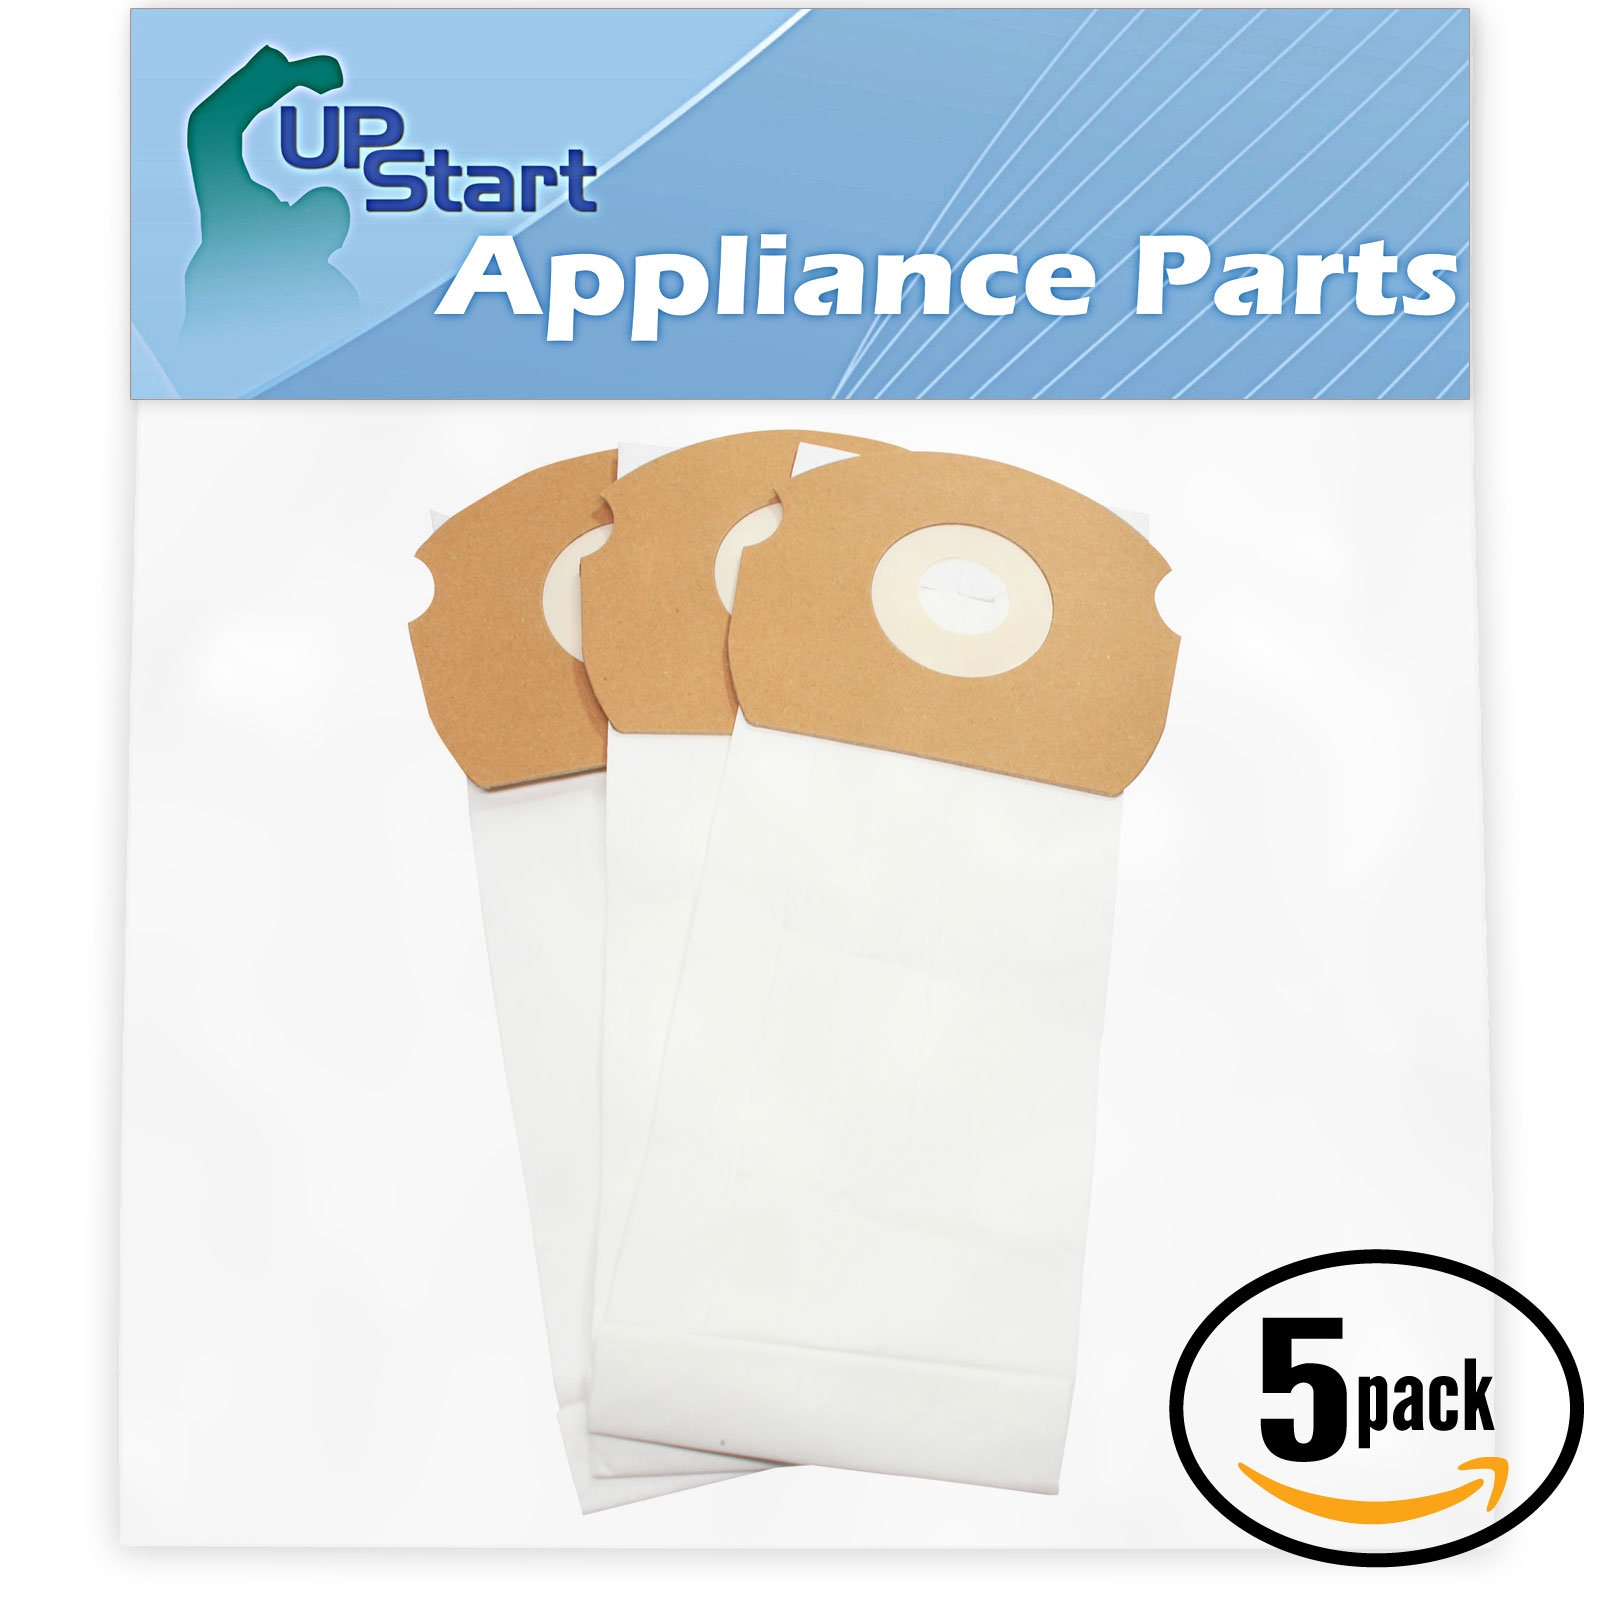 15 Replacement Eureka AirSpeed ASM1076 Vacuum Bags  - Compatible Eureka 68155, AS Vacuum Bags (5-Pack - 3 Vacuum Bags per Pack)